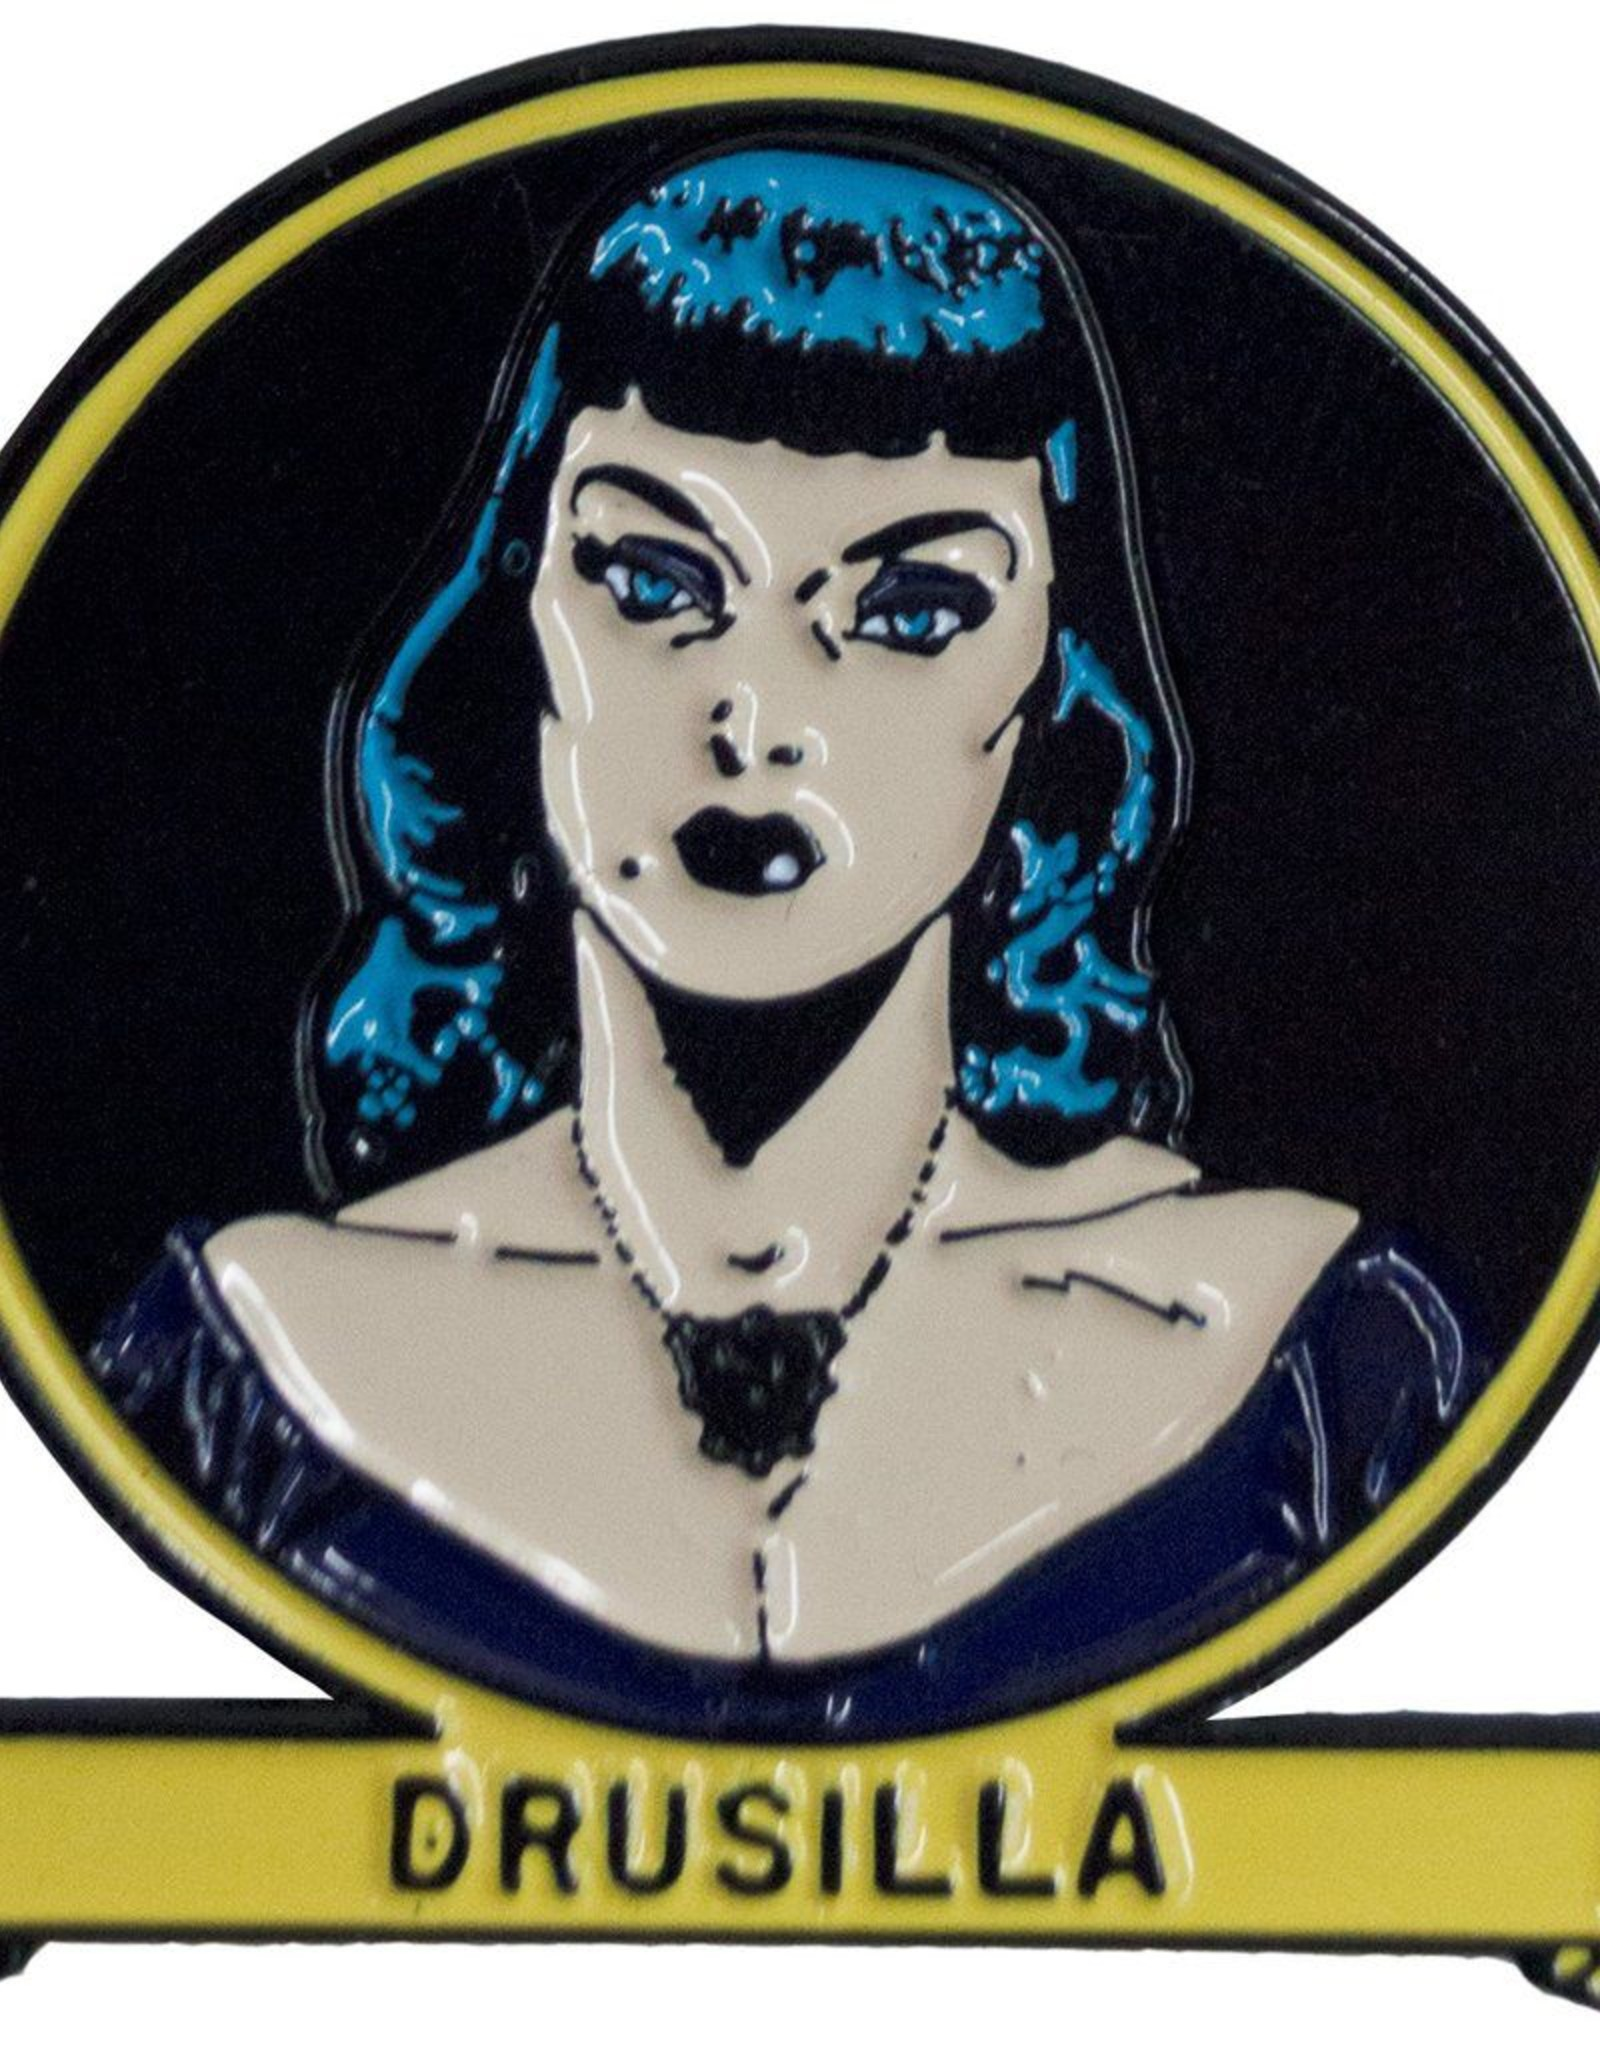 Tales From the Crypt Drusilla Enamel Pin